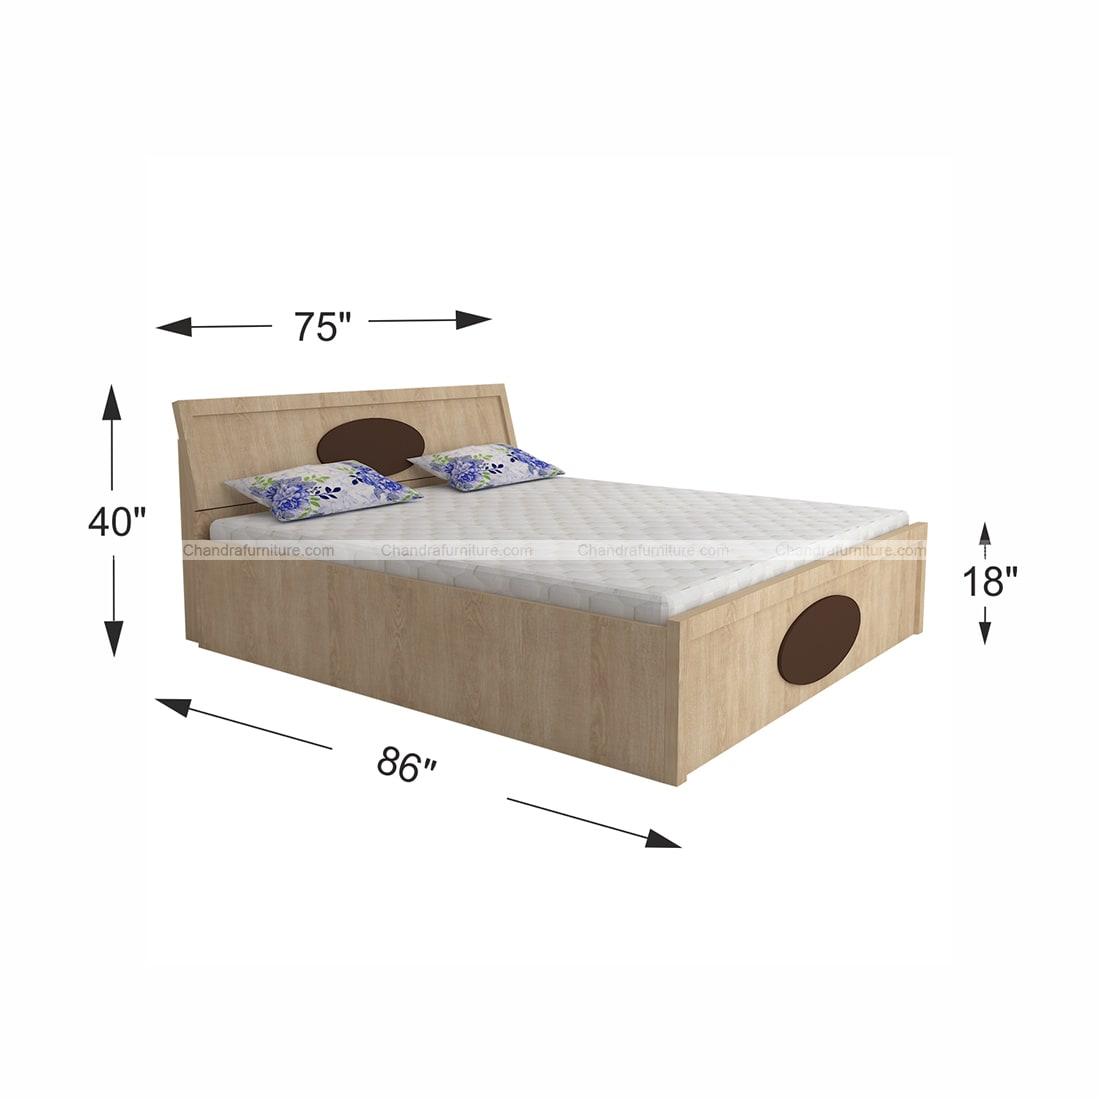 Chandra Furniture King Size Bed - 121 Moon